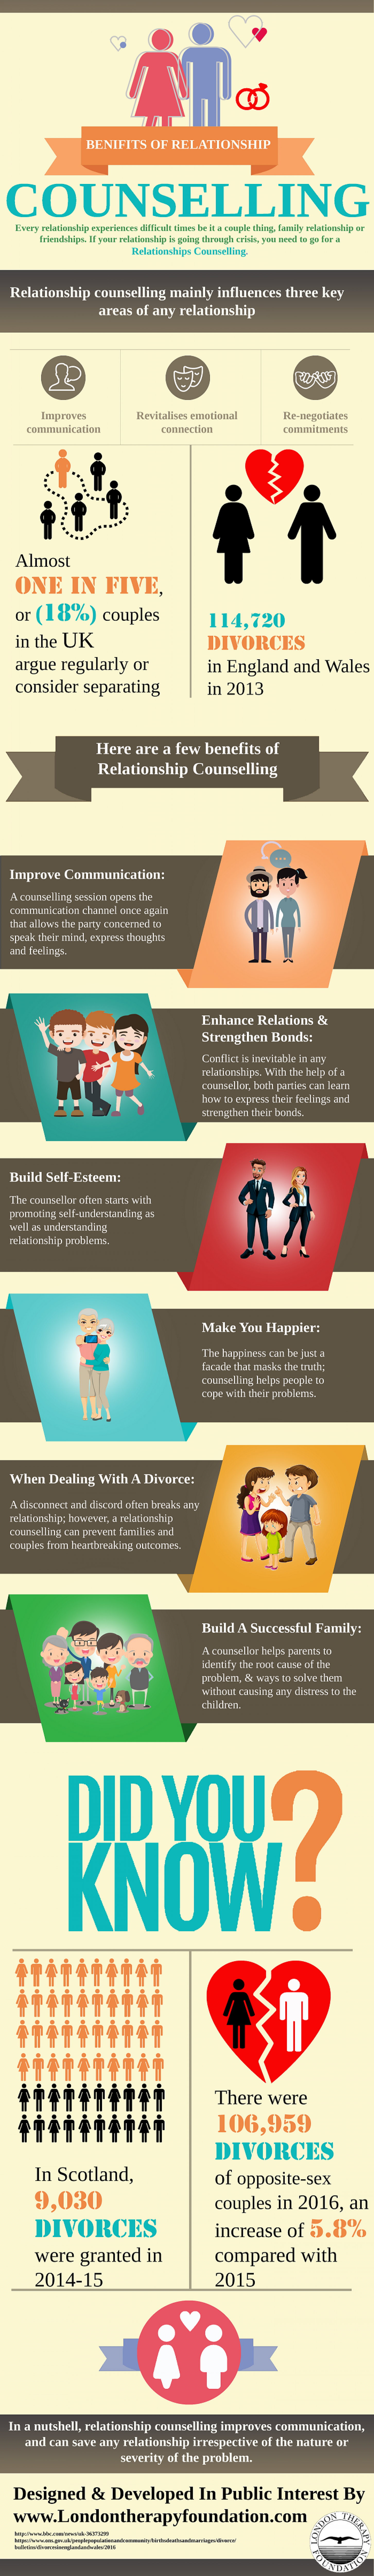 Benefits of Relationship Counselling Infographic